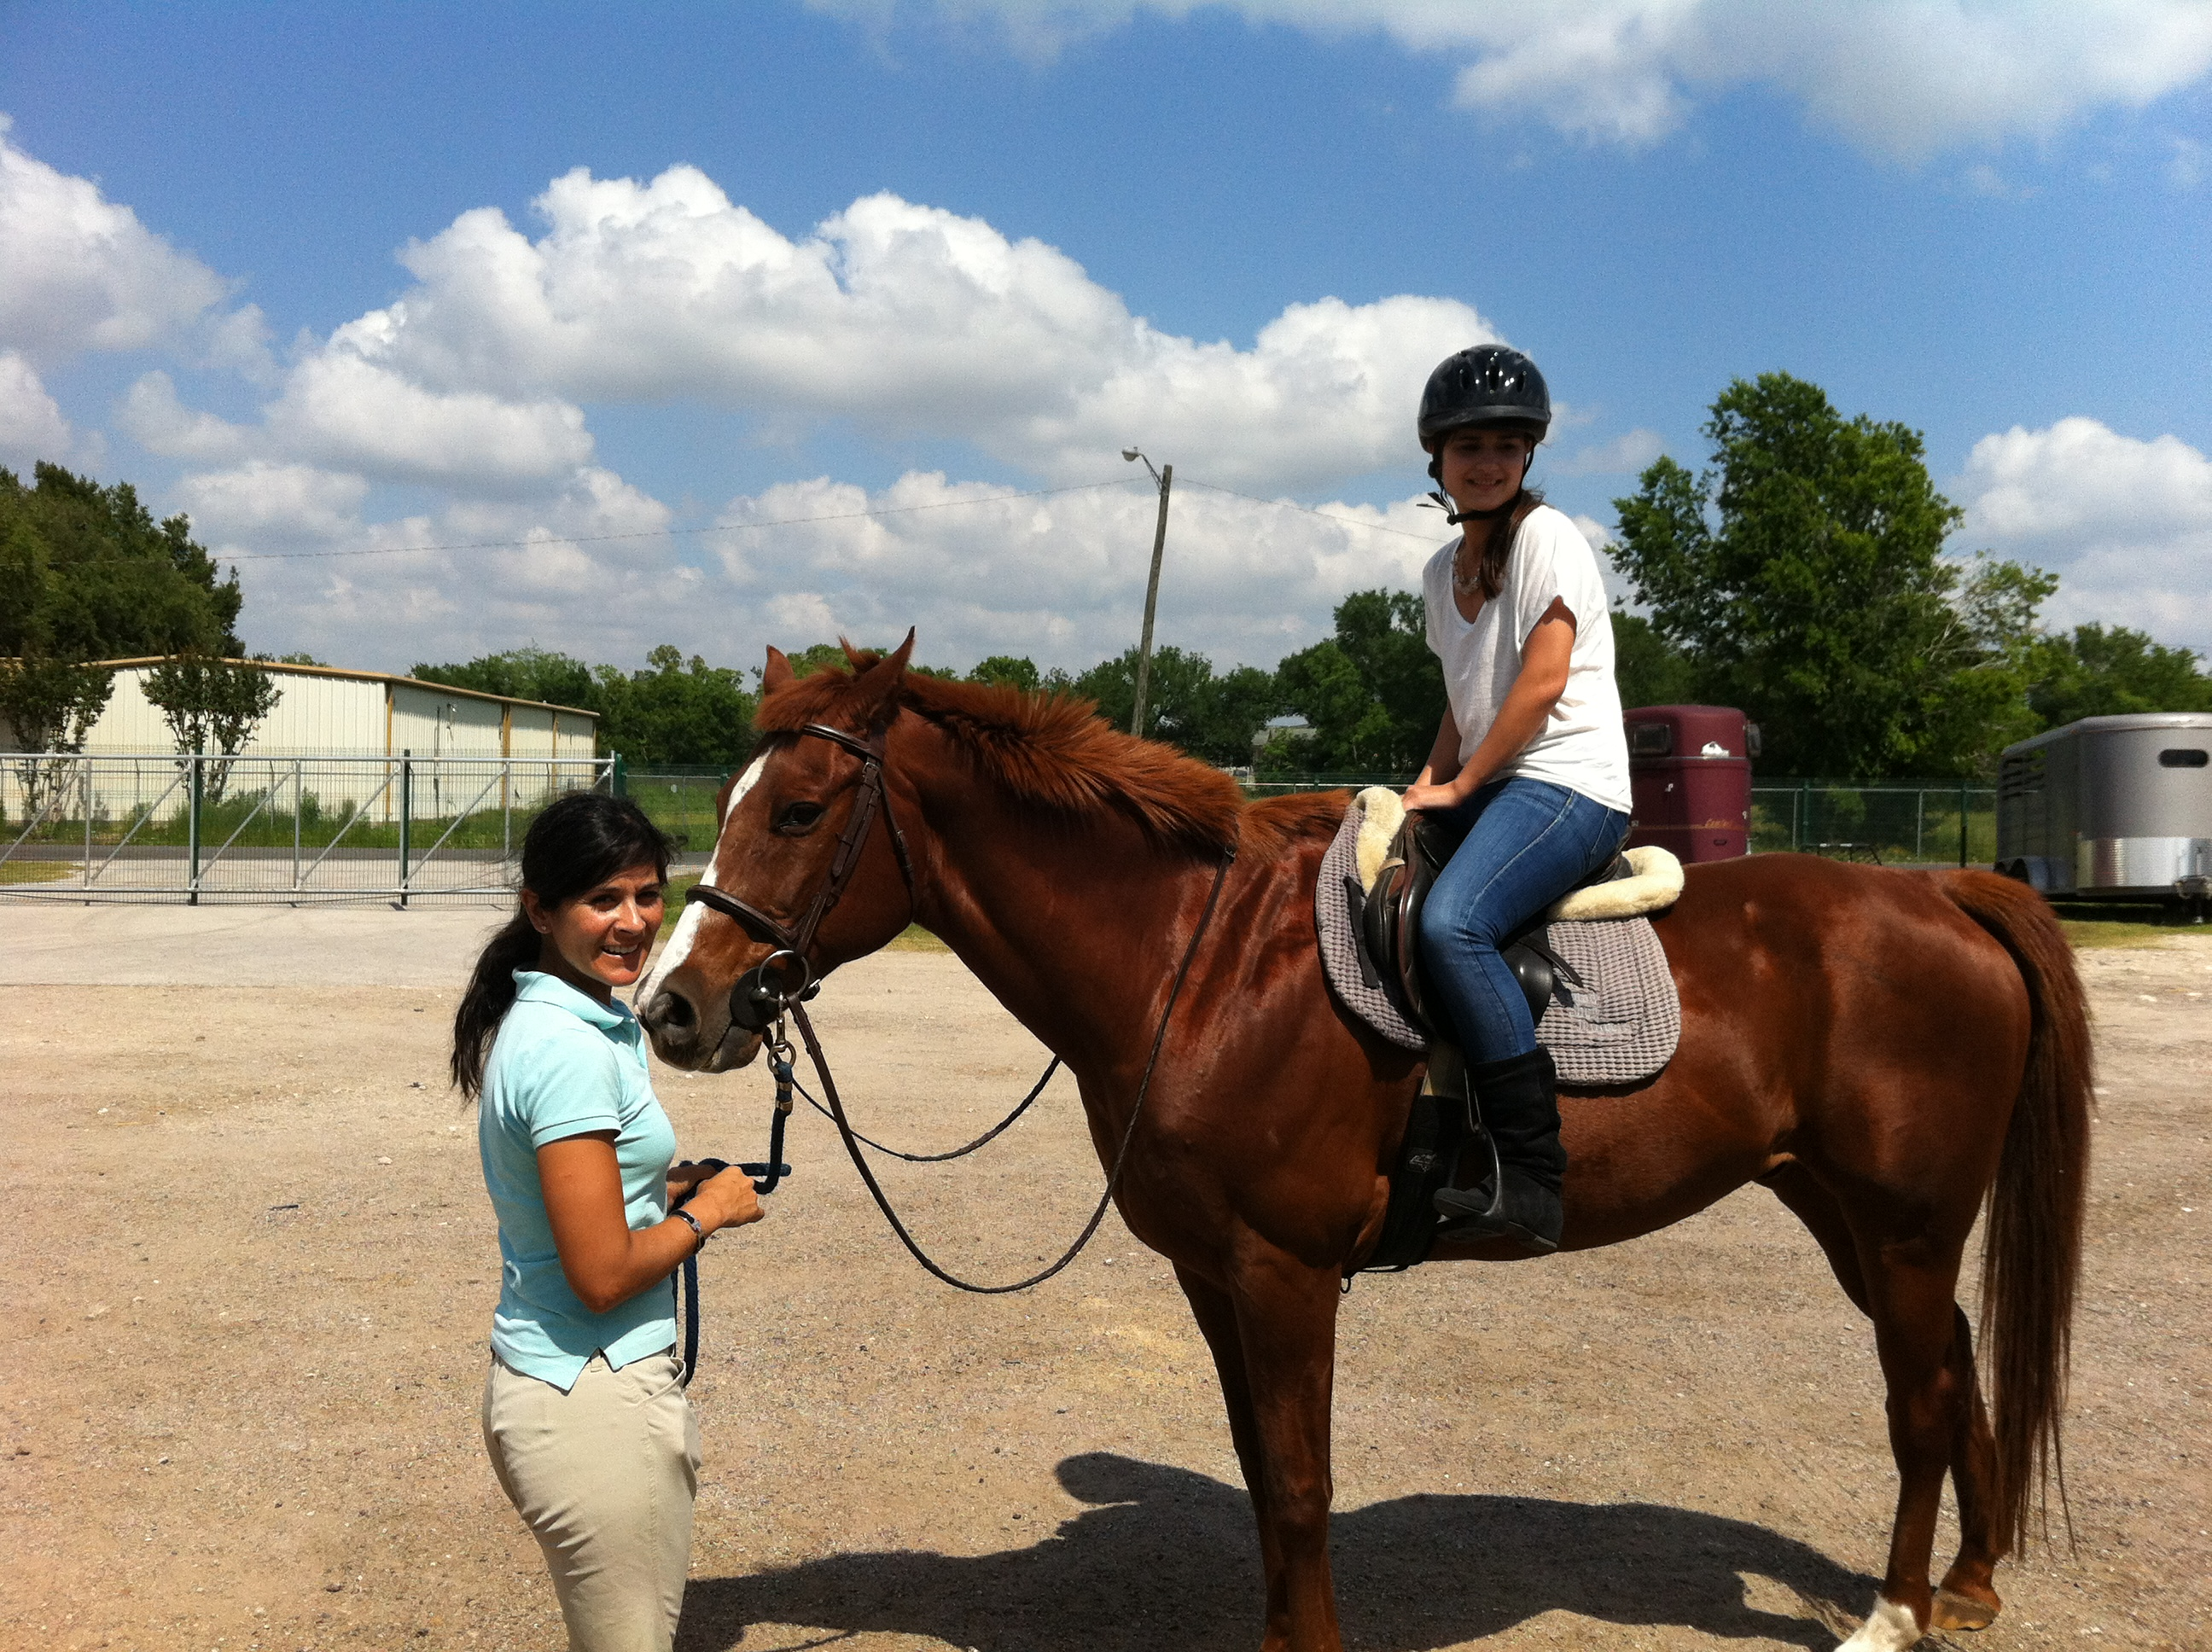 How to Ride a Horse (with Pictures) - wikiHow